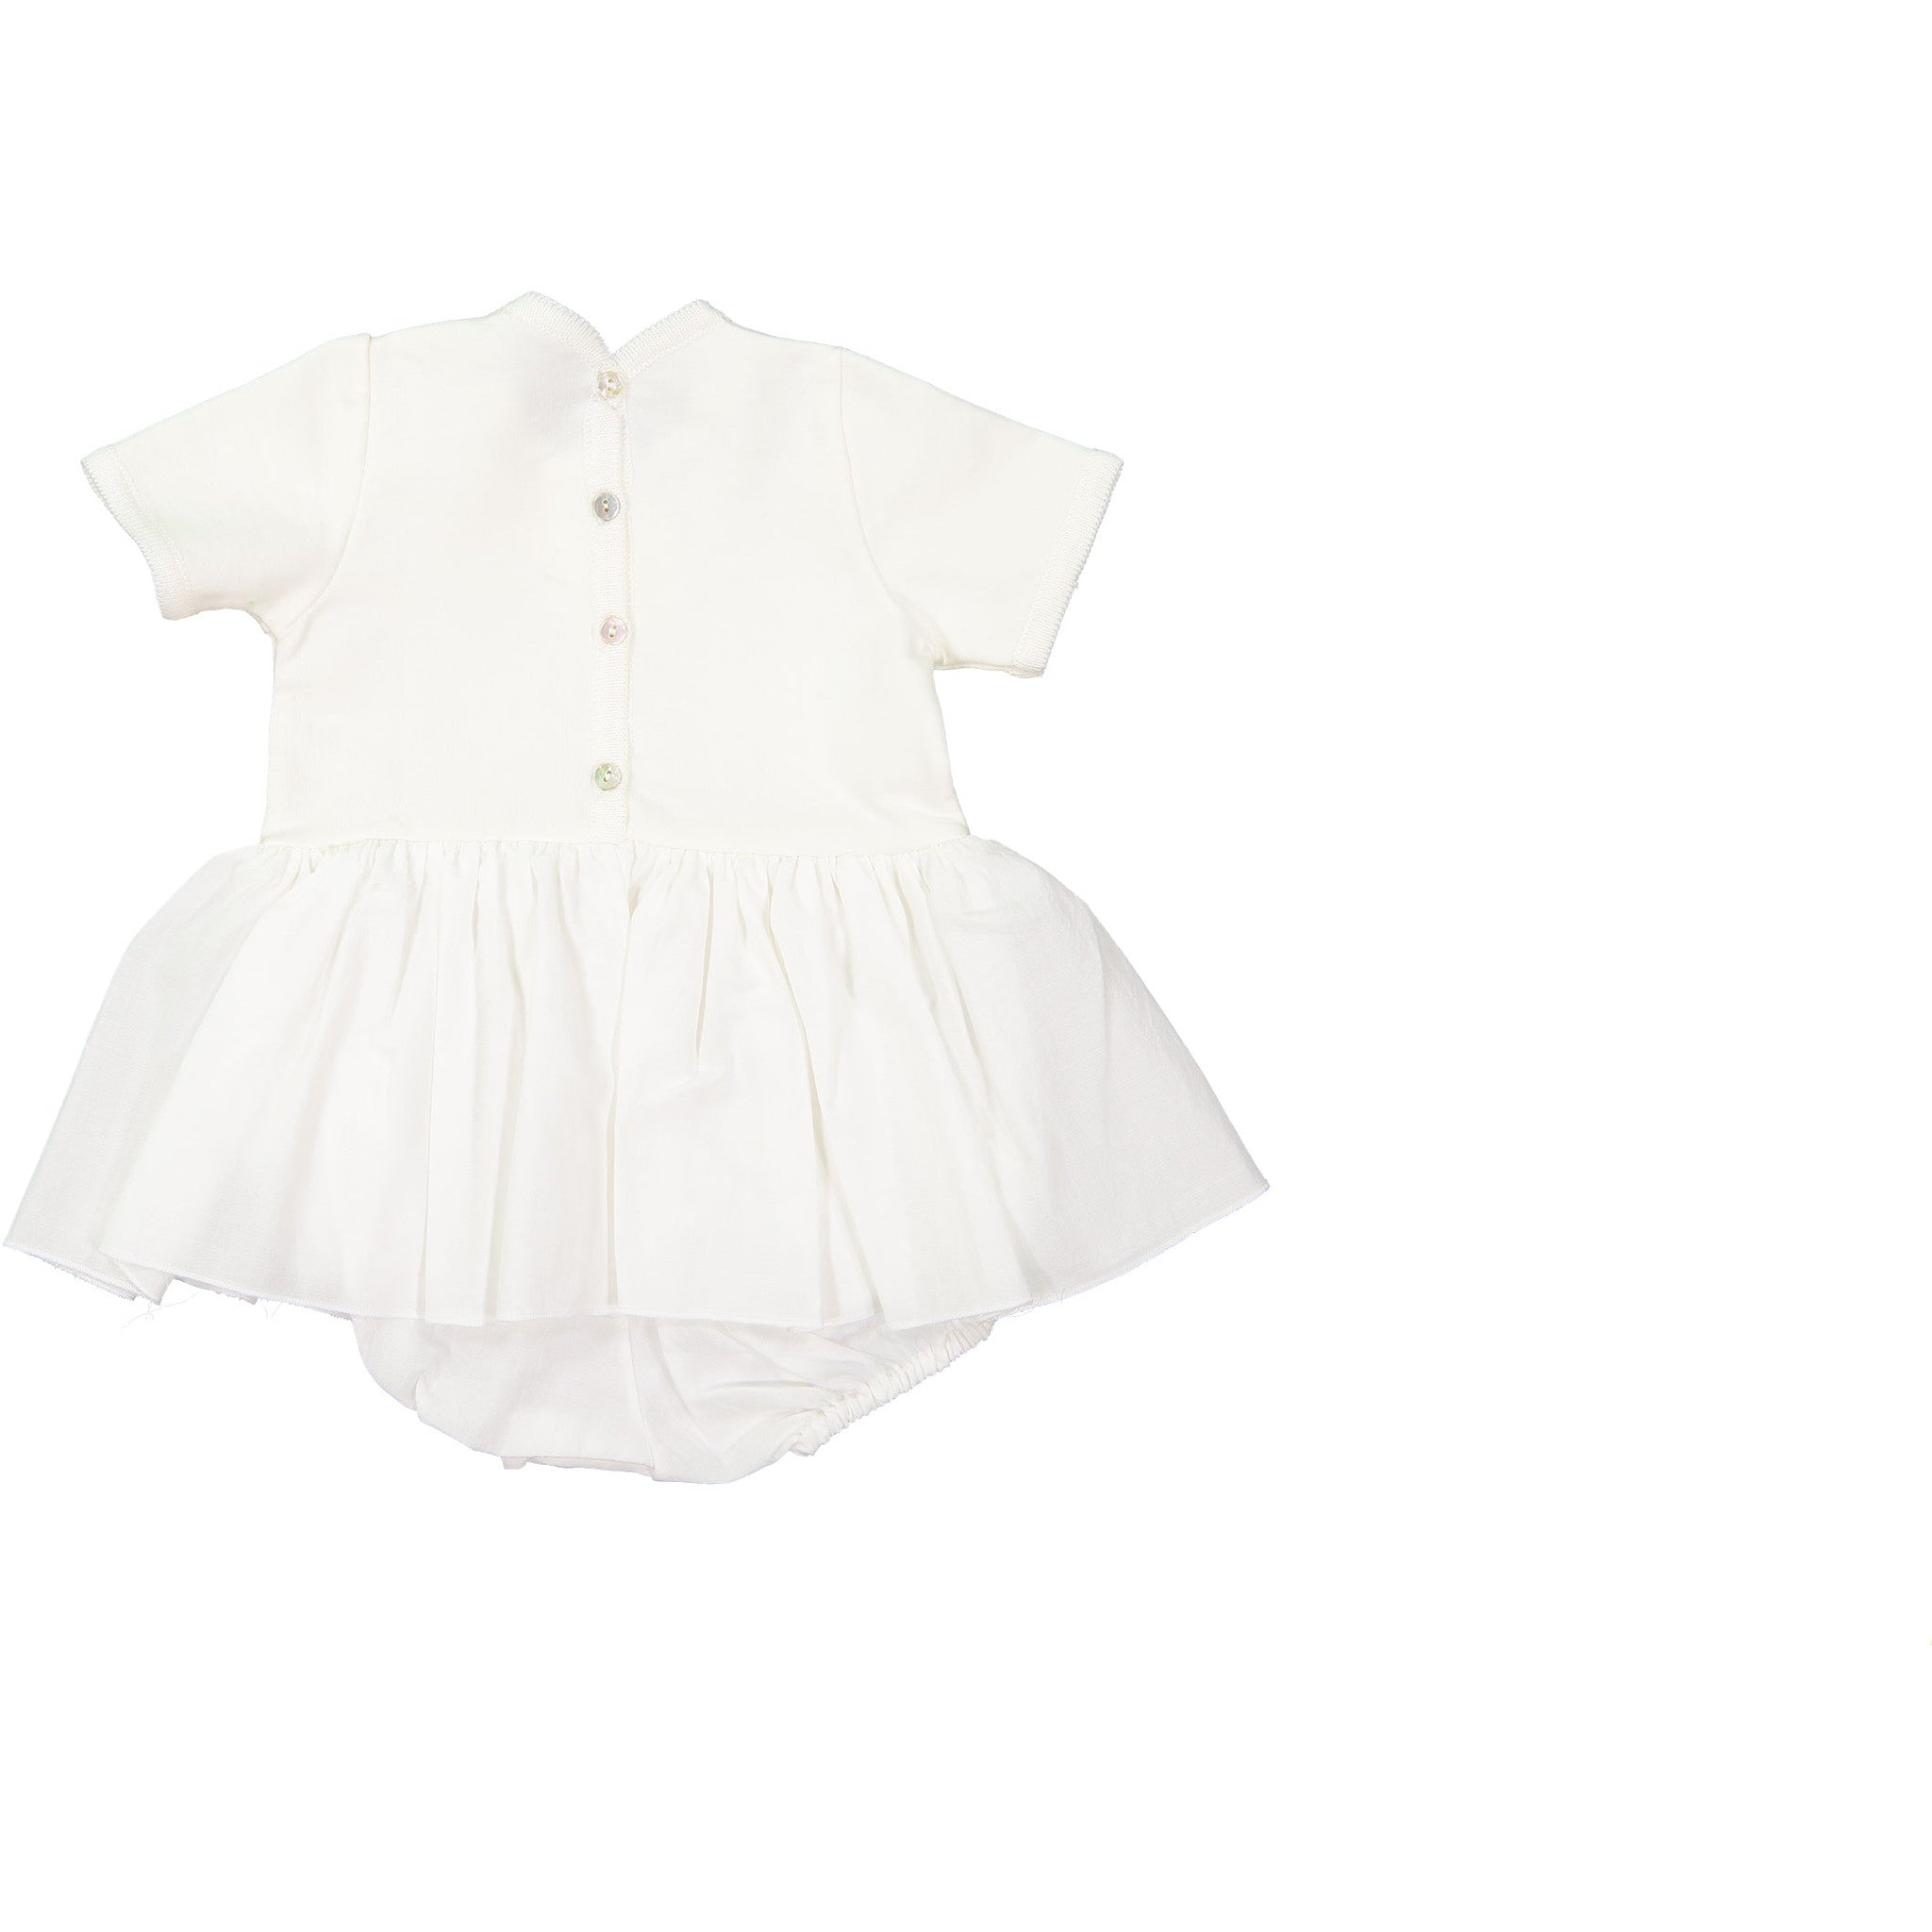 Pequeno Tocon Natural Onesie Skirt - Ladida